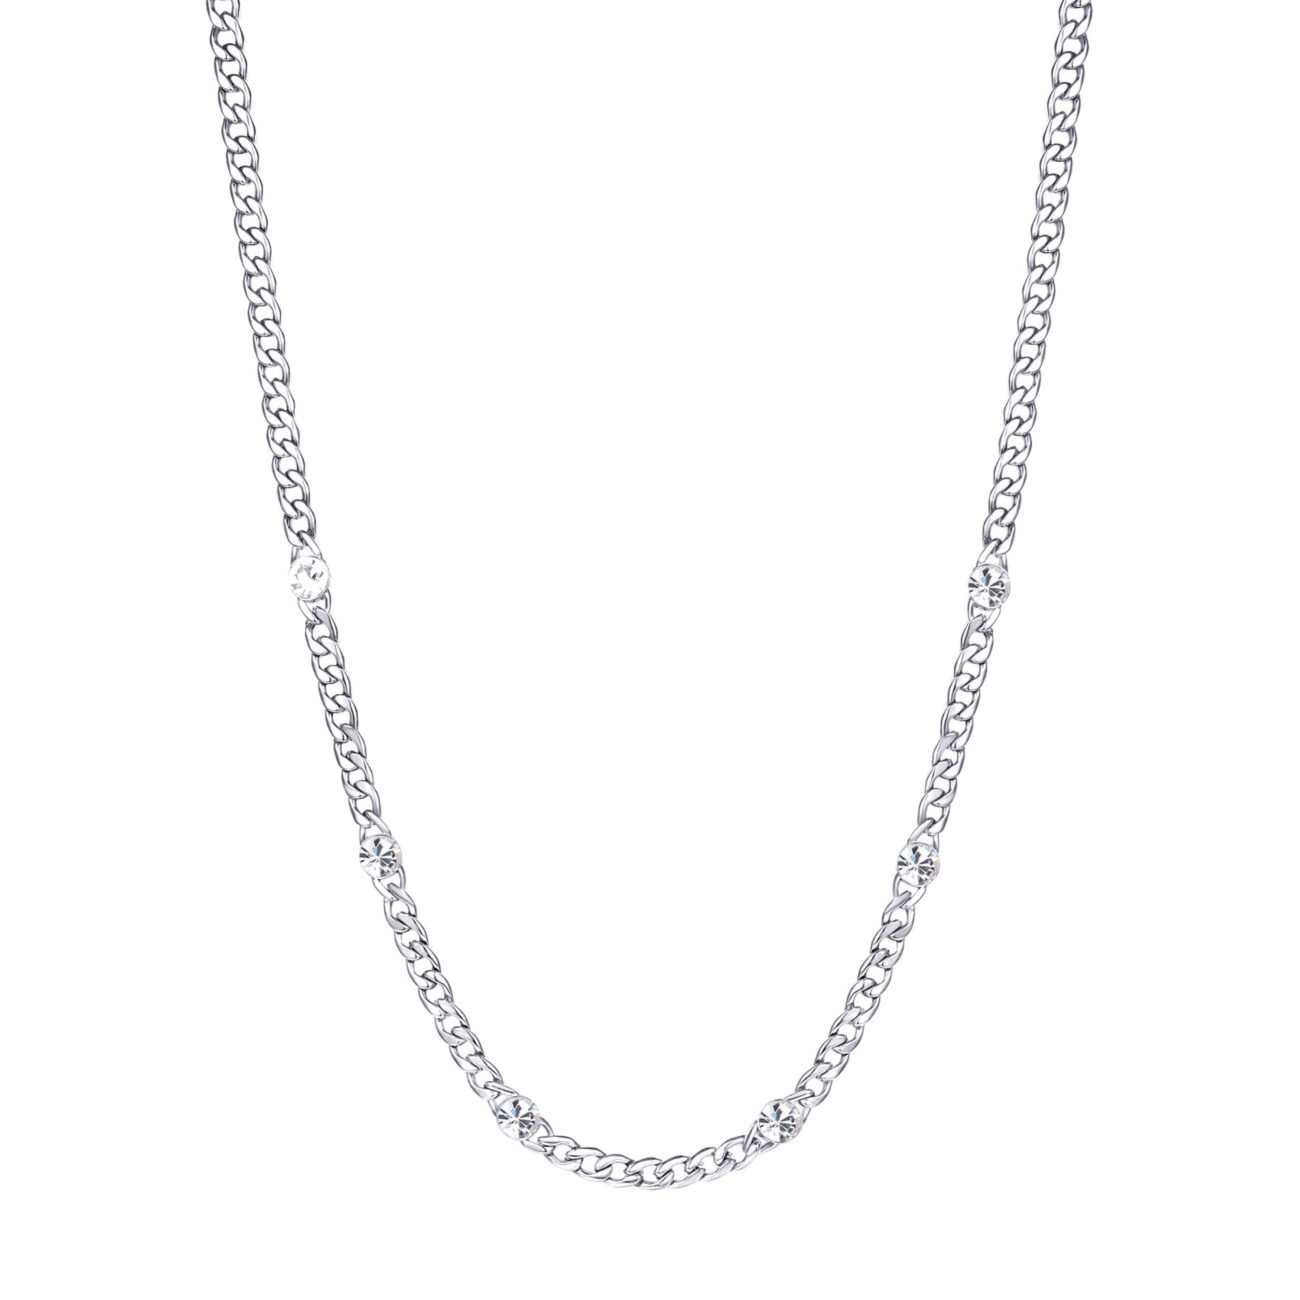 316L stainless steel chain necklace with crystals.